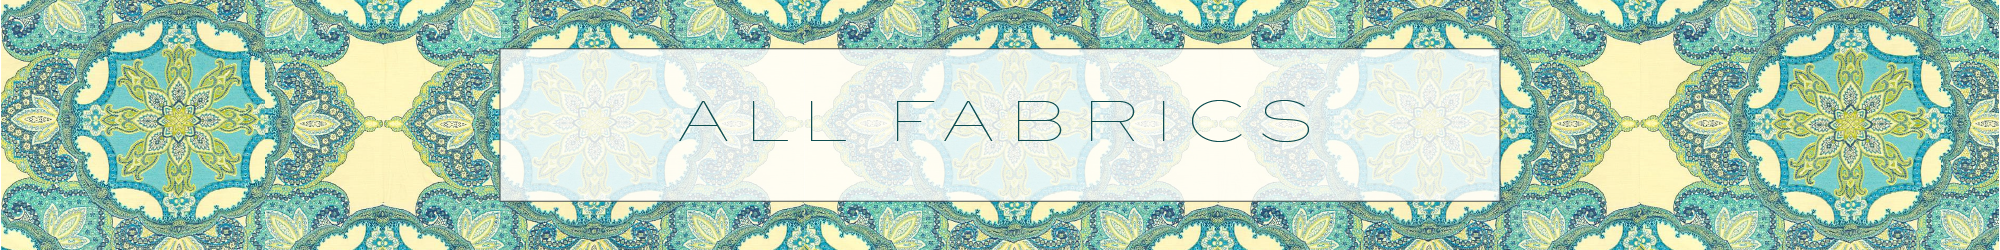 Zarin Fabrics Carries Over 10,000 Rolls Of In-Stock Fabrics From textiles Houses Such As Robert Allen, Kravet, Missoni, Fabricut, Holly Hunt, an Many More. We Are The Largest In-Stock Fabric Warehouse in The Metropolitan Area, and We Are Happy To Assist You With Your Project. Not Sure About A Fabric? Order a Free Swatch Sample! We Look Forward To Working With You!